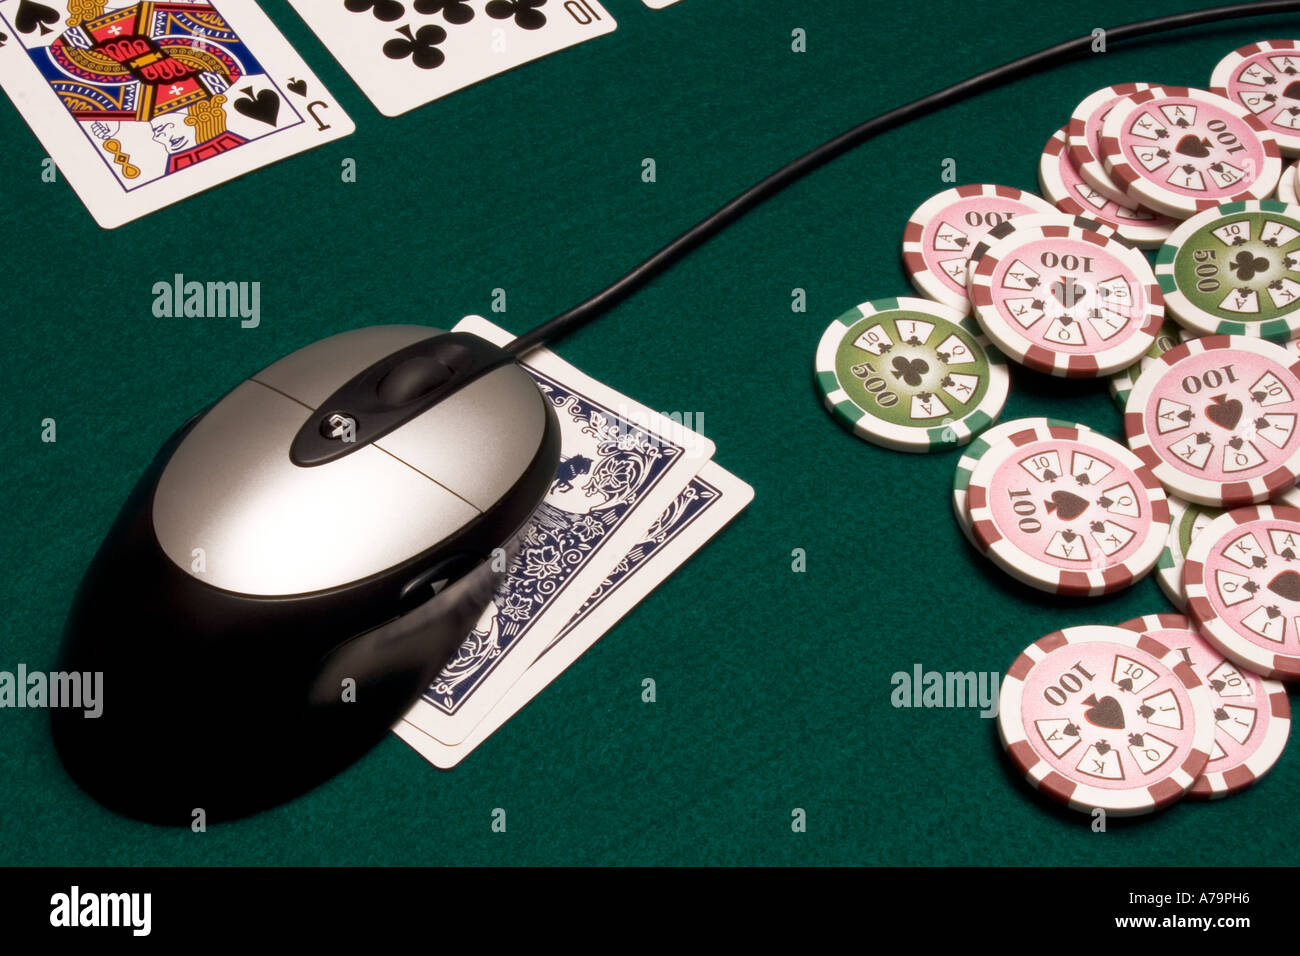 Mouse on playing cards - Stock Image